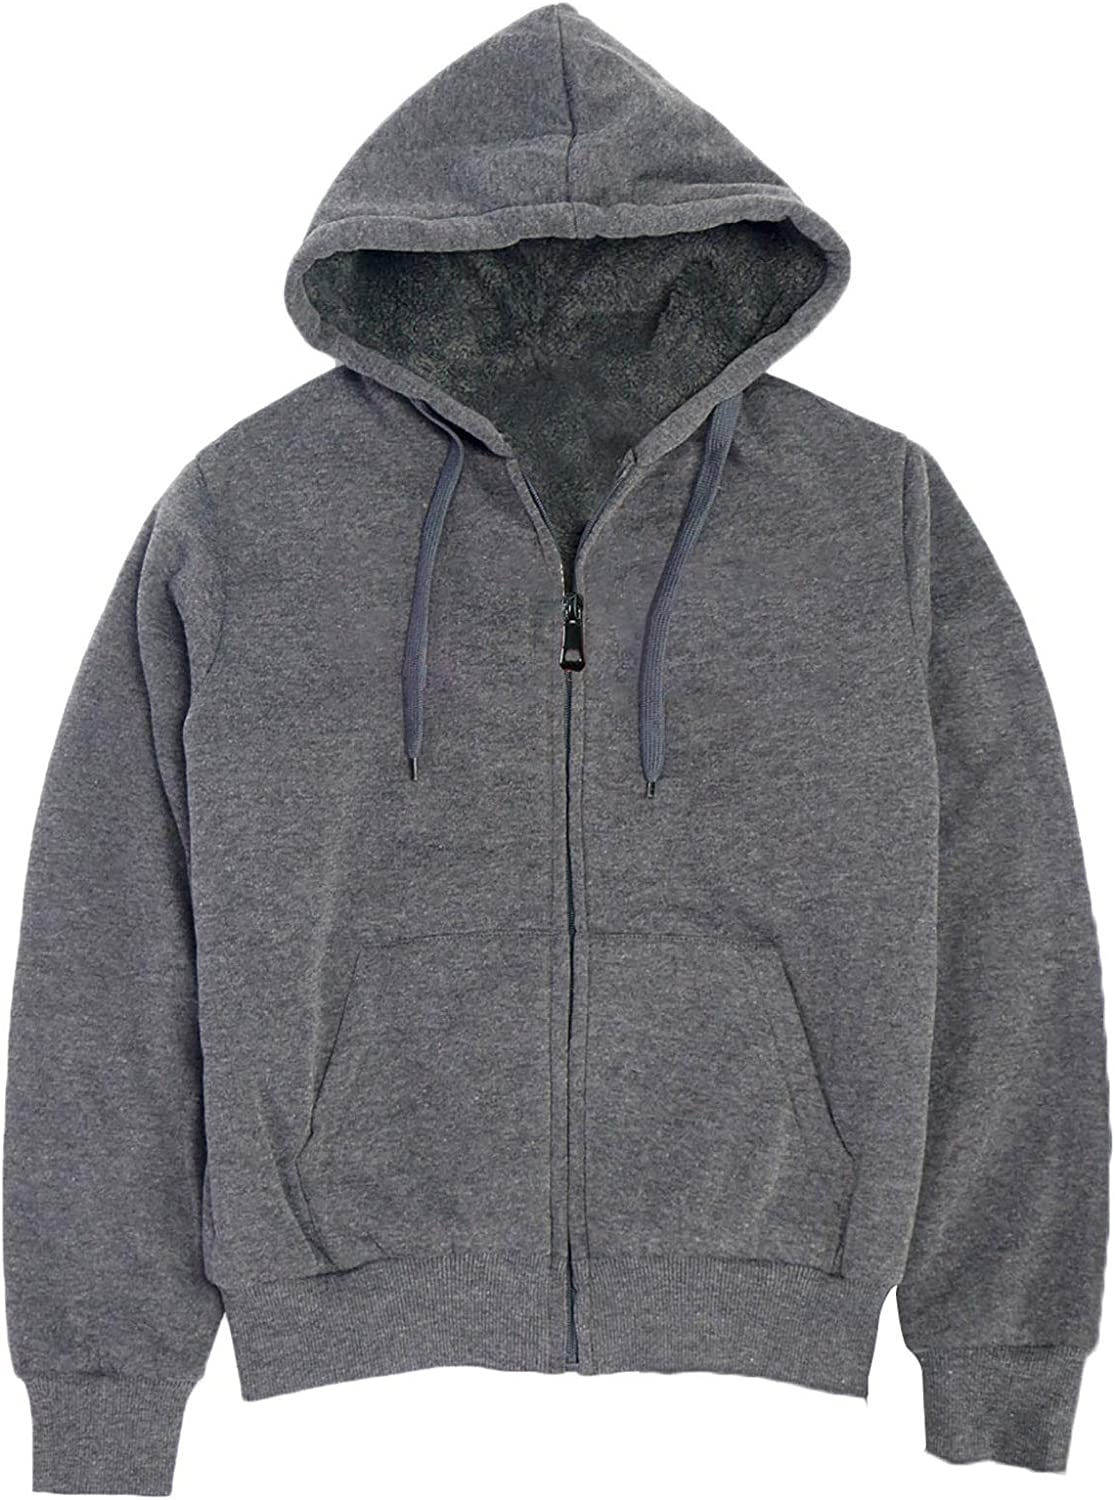 Boys' Sherpa-Lined Fleece Zip-Up Hoodie Kids Youth S Sweatshirts All items free Online limited product shipping